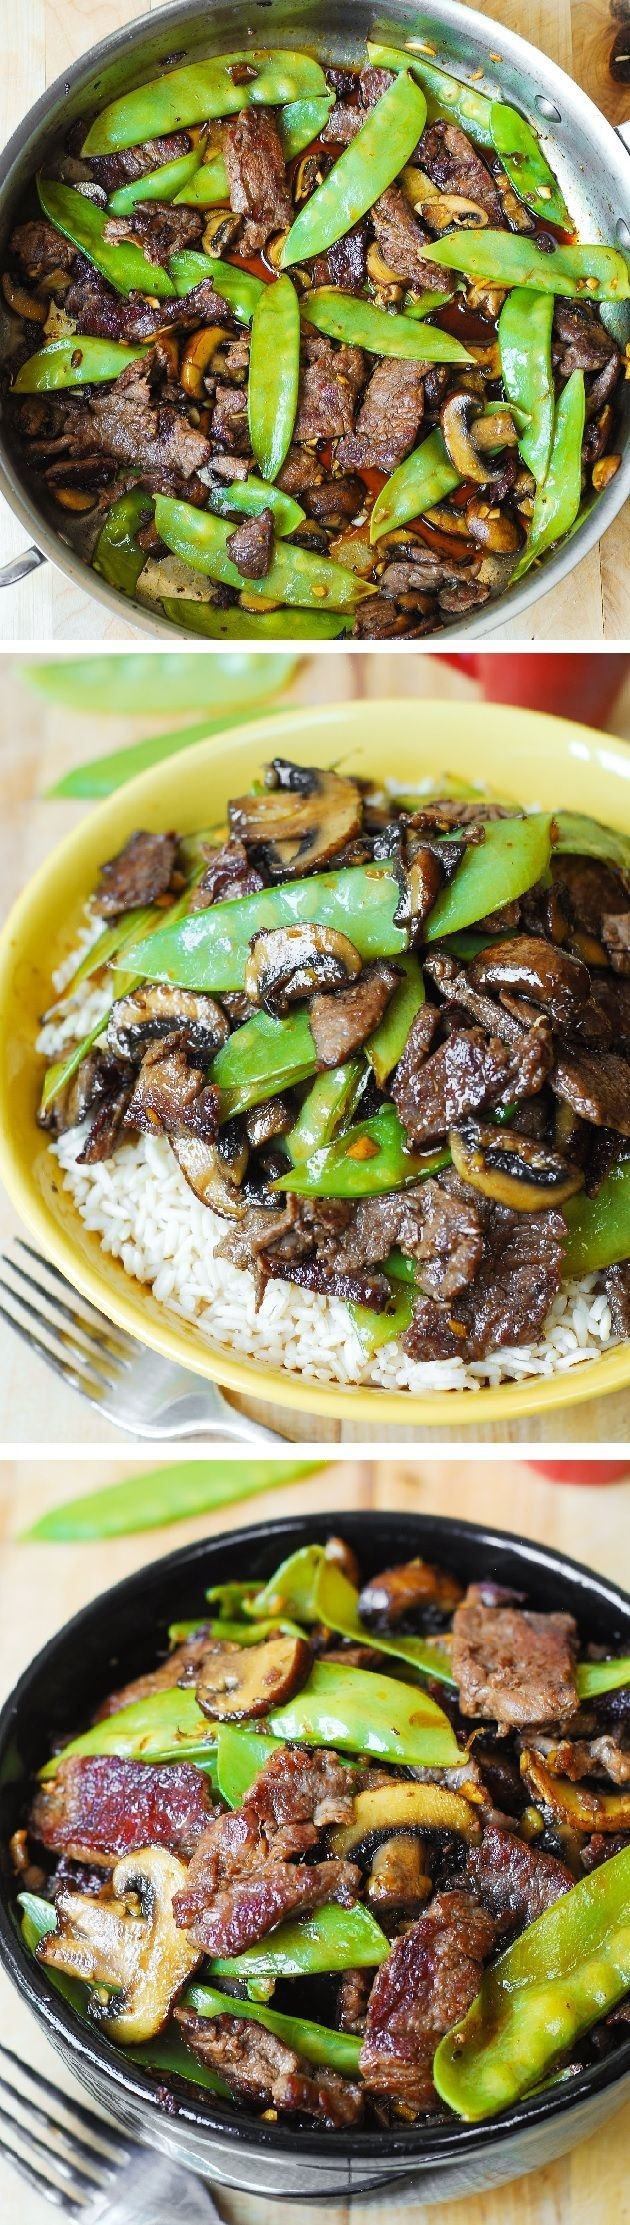 Asian Beef with Mushrooms & Snow Peas in a homemade Asian sauce – delish and easy-to-make! Tender mushrooms, crisp snow peas, and thinly sliced sirloin steak strips sautéed in garlic. (Asian food) (Easy Meal To Make)